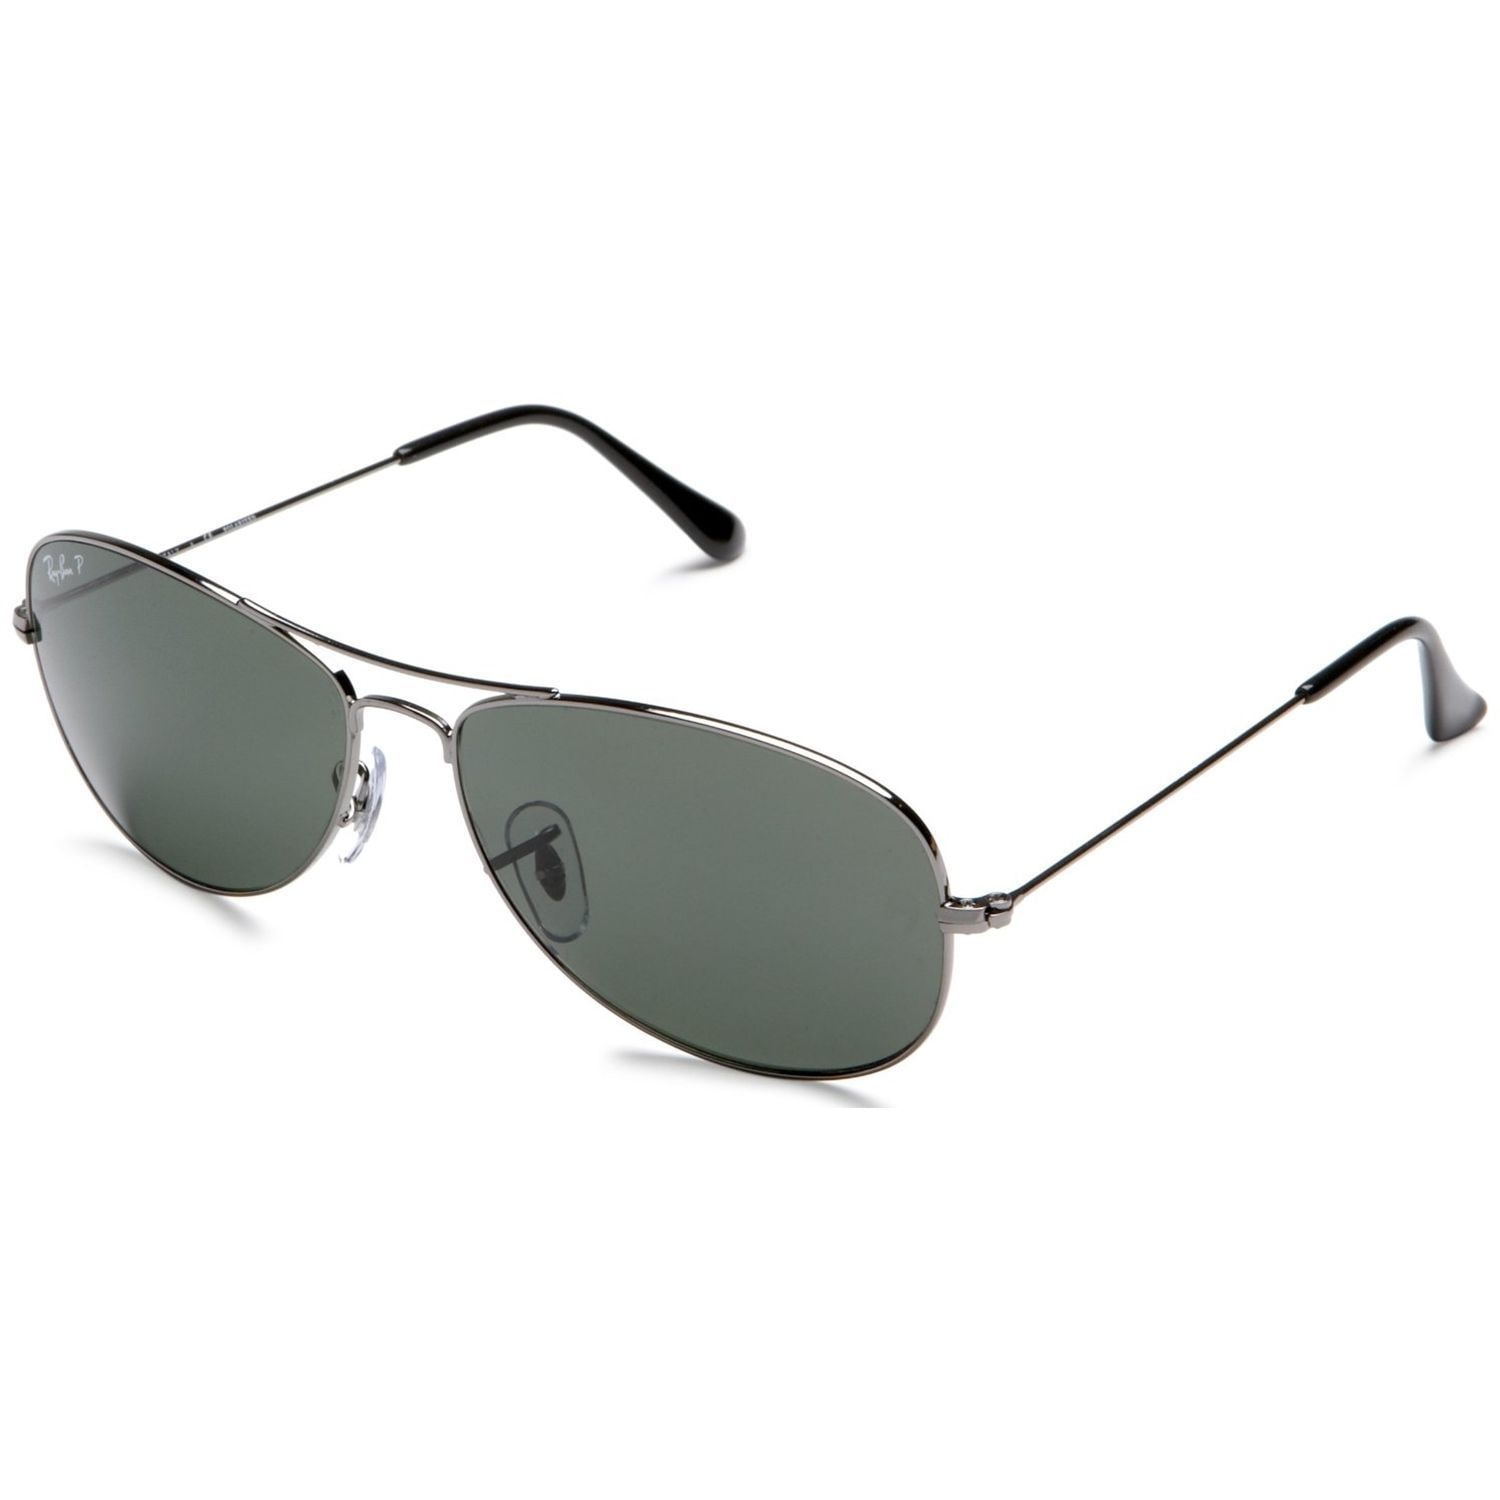 0a0f3ff6be Ray-Ban RB3362 004 58 Cockpit Gunmetal Frame Polarized Green 59mm Lens  Sunglasses